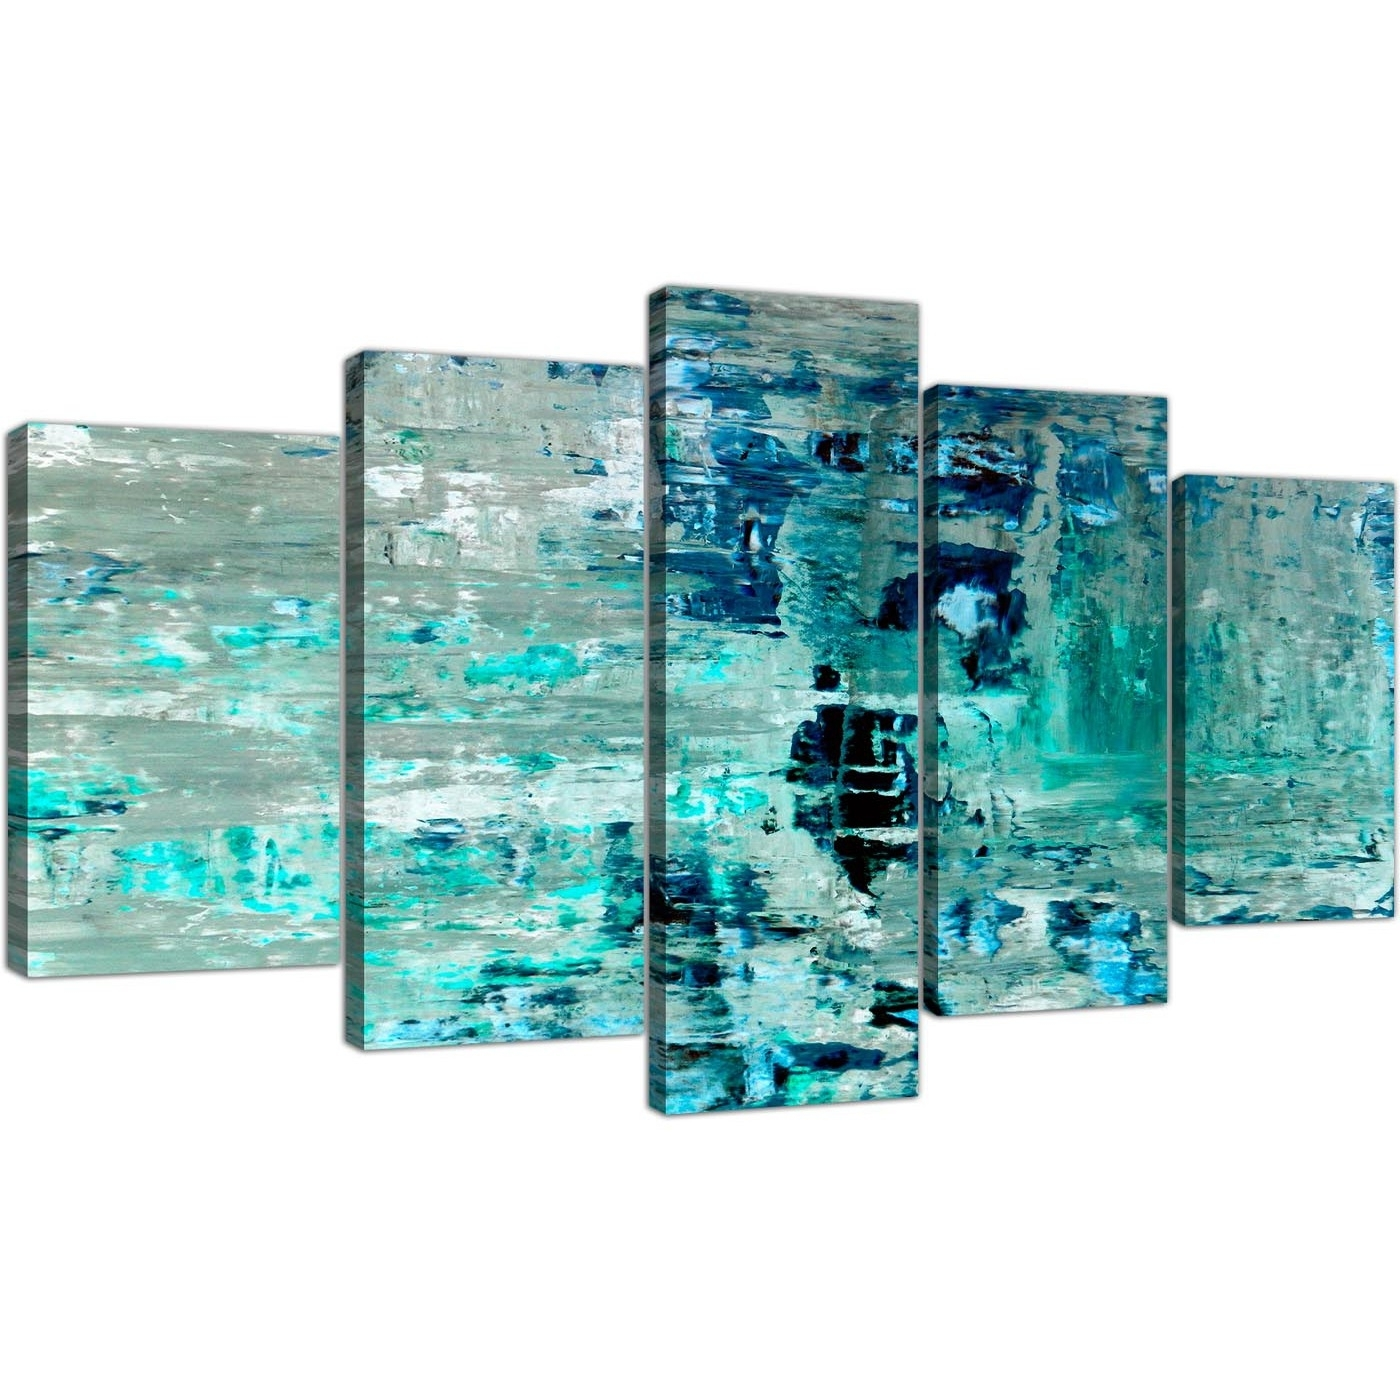 Extra Large Turquoise Teal Abstract Painting Wall Art Print Canvas In Most Recent Large Canvas Painting Wall Art (View 13 of 20)